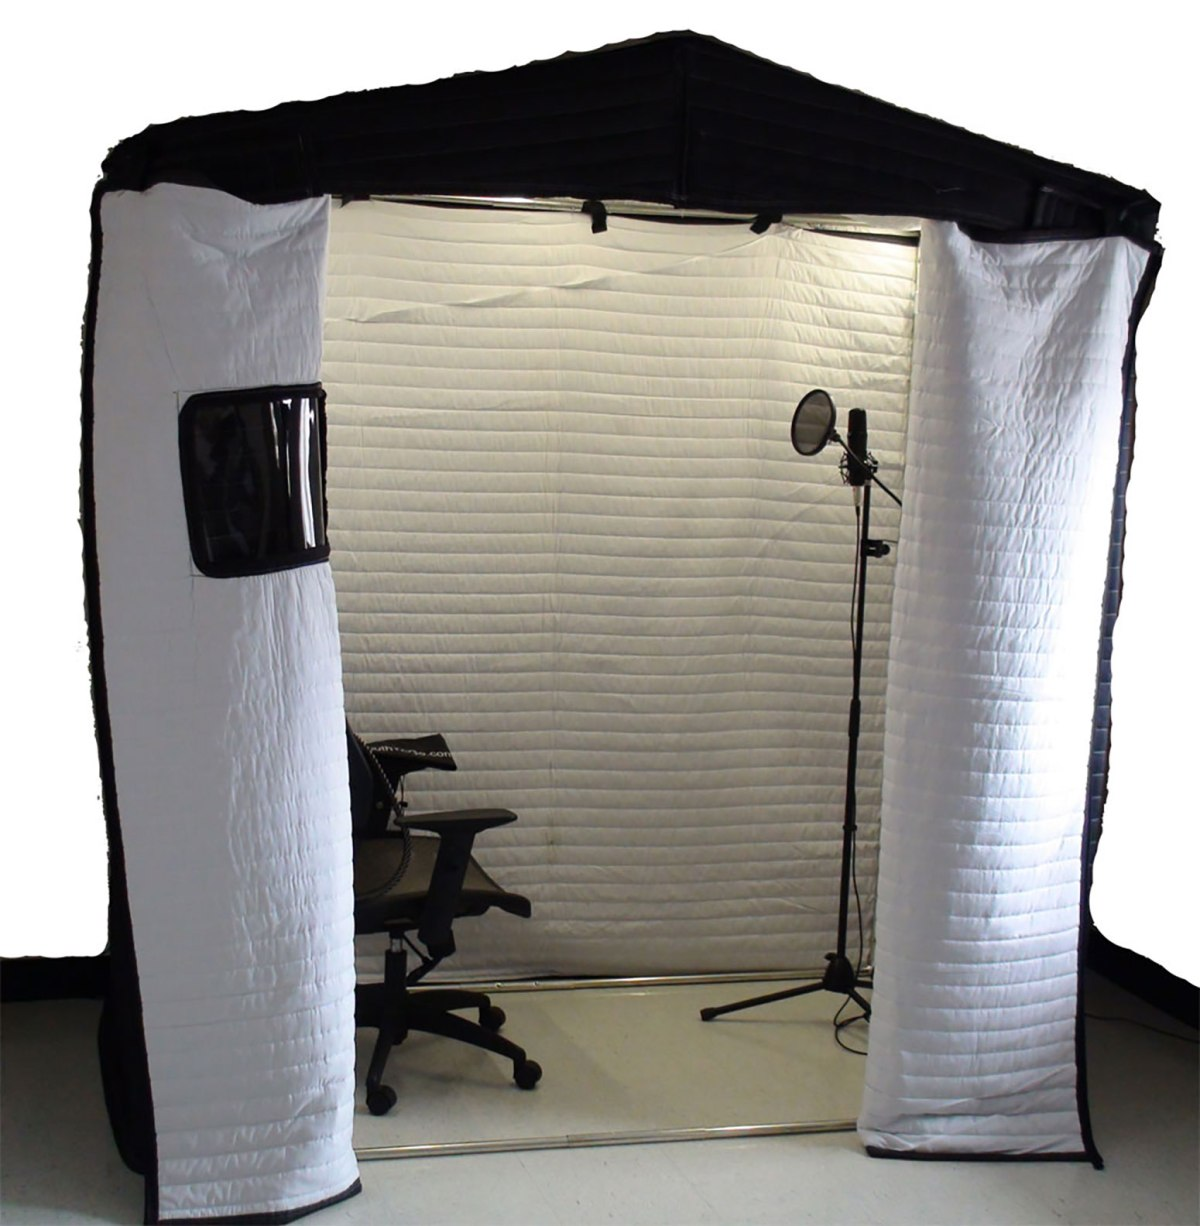 How to build a Mobile Acoustic Vocal booth on a budget